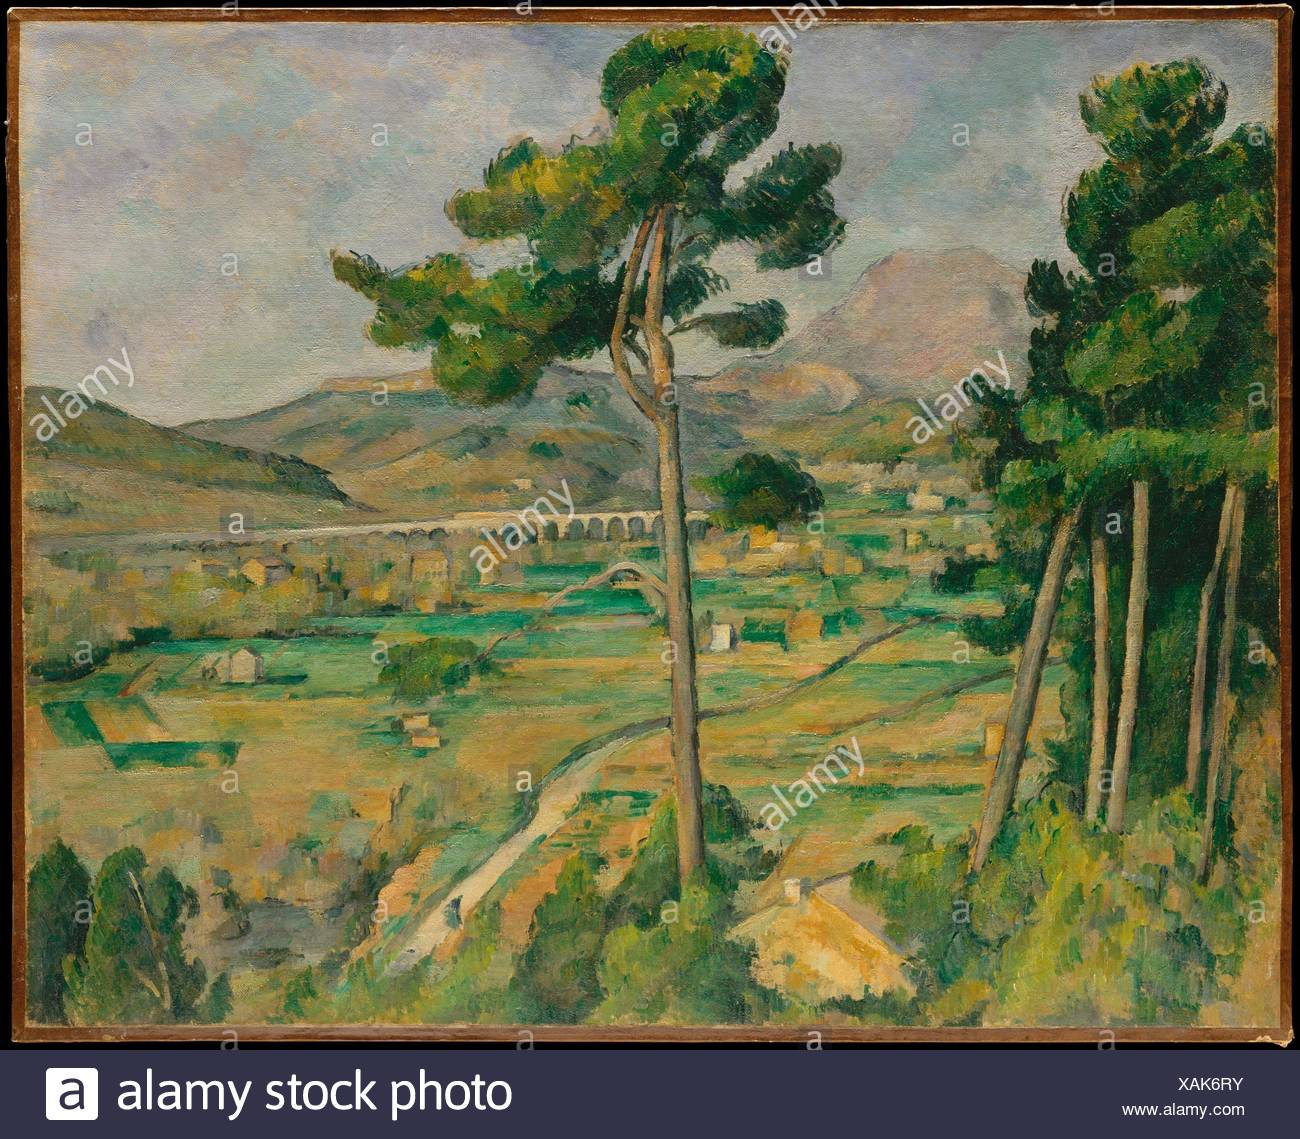 Mont Sainte-Victoire and the Viaduct of the Arc River Valley. Artist: Paul Cézanne (French, Aix-en-Provence 1839-1906 Aix-en-Provence); Date: Stock Photo